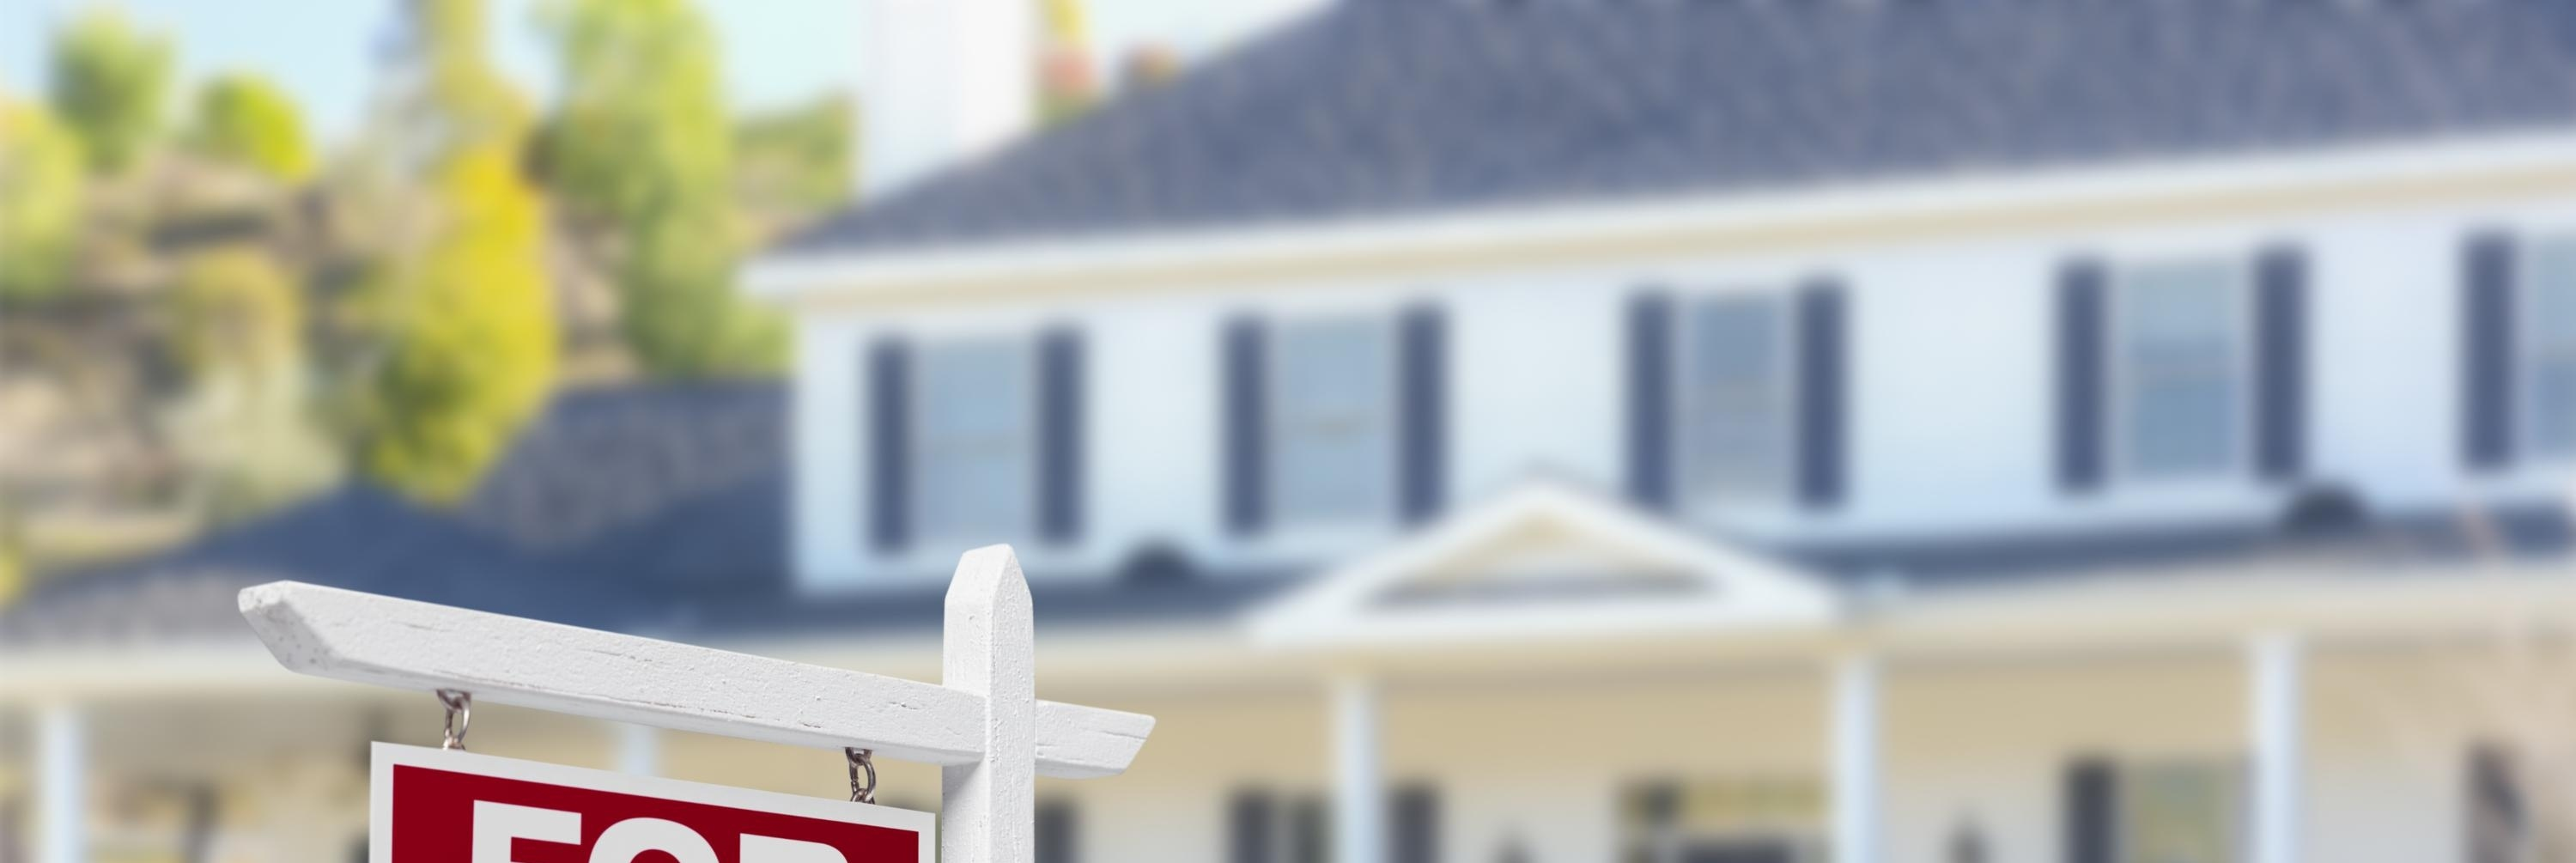 Real Estate direct mail services